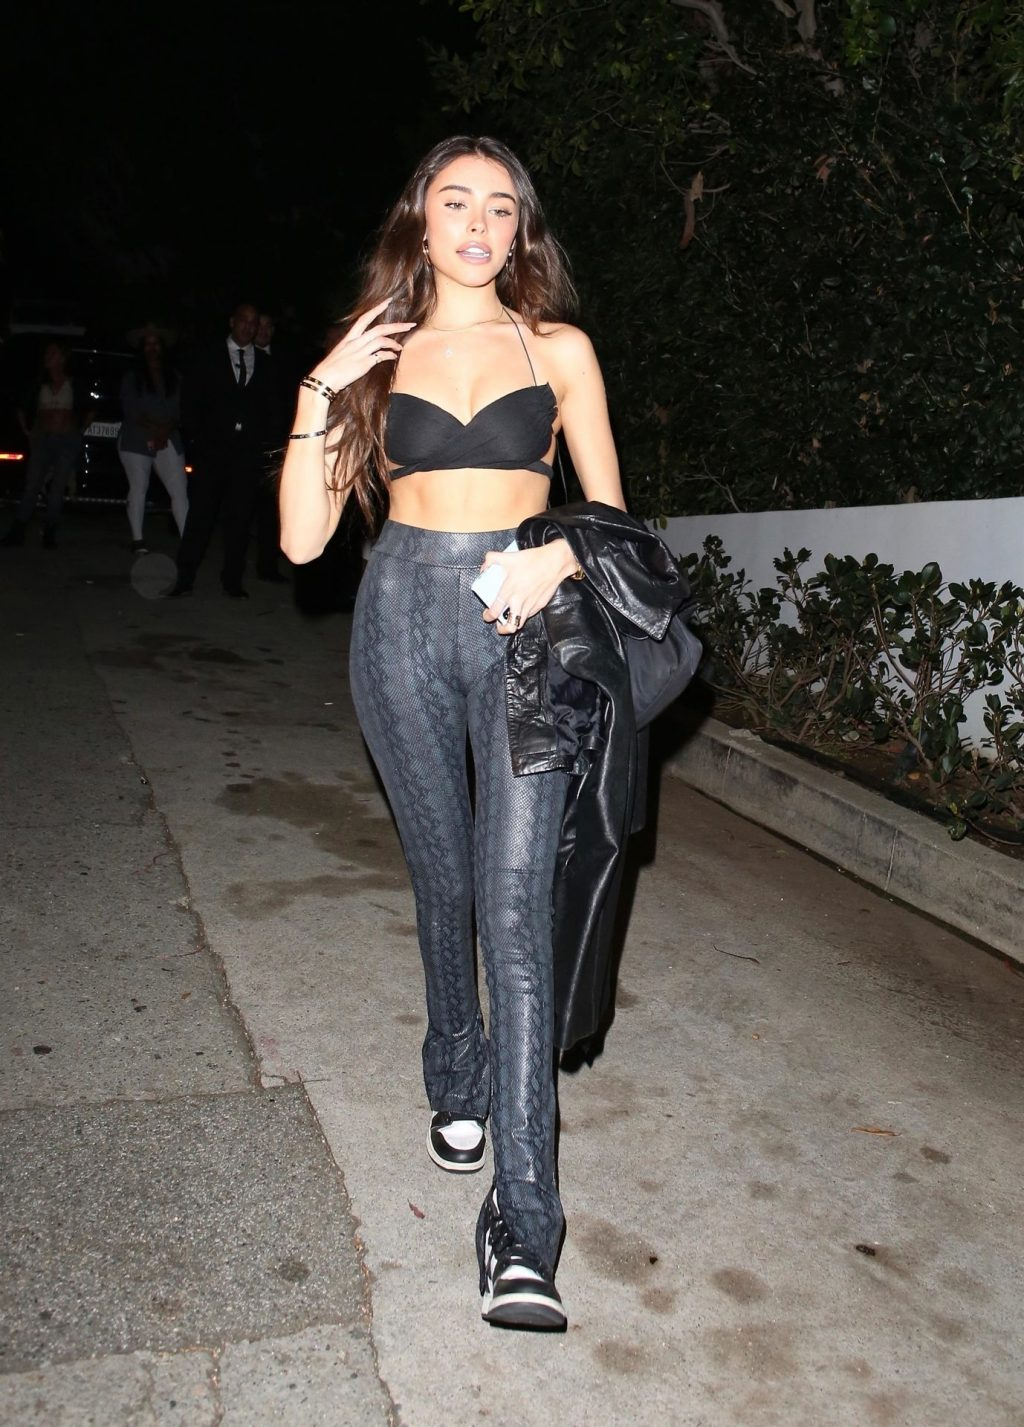 Madison Beer Sexy The Fappening Blog 43 1024x1427 - Madison Beer Shows Some Skin at a House Party in Los Angeles (46 Photos)